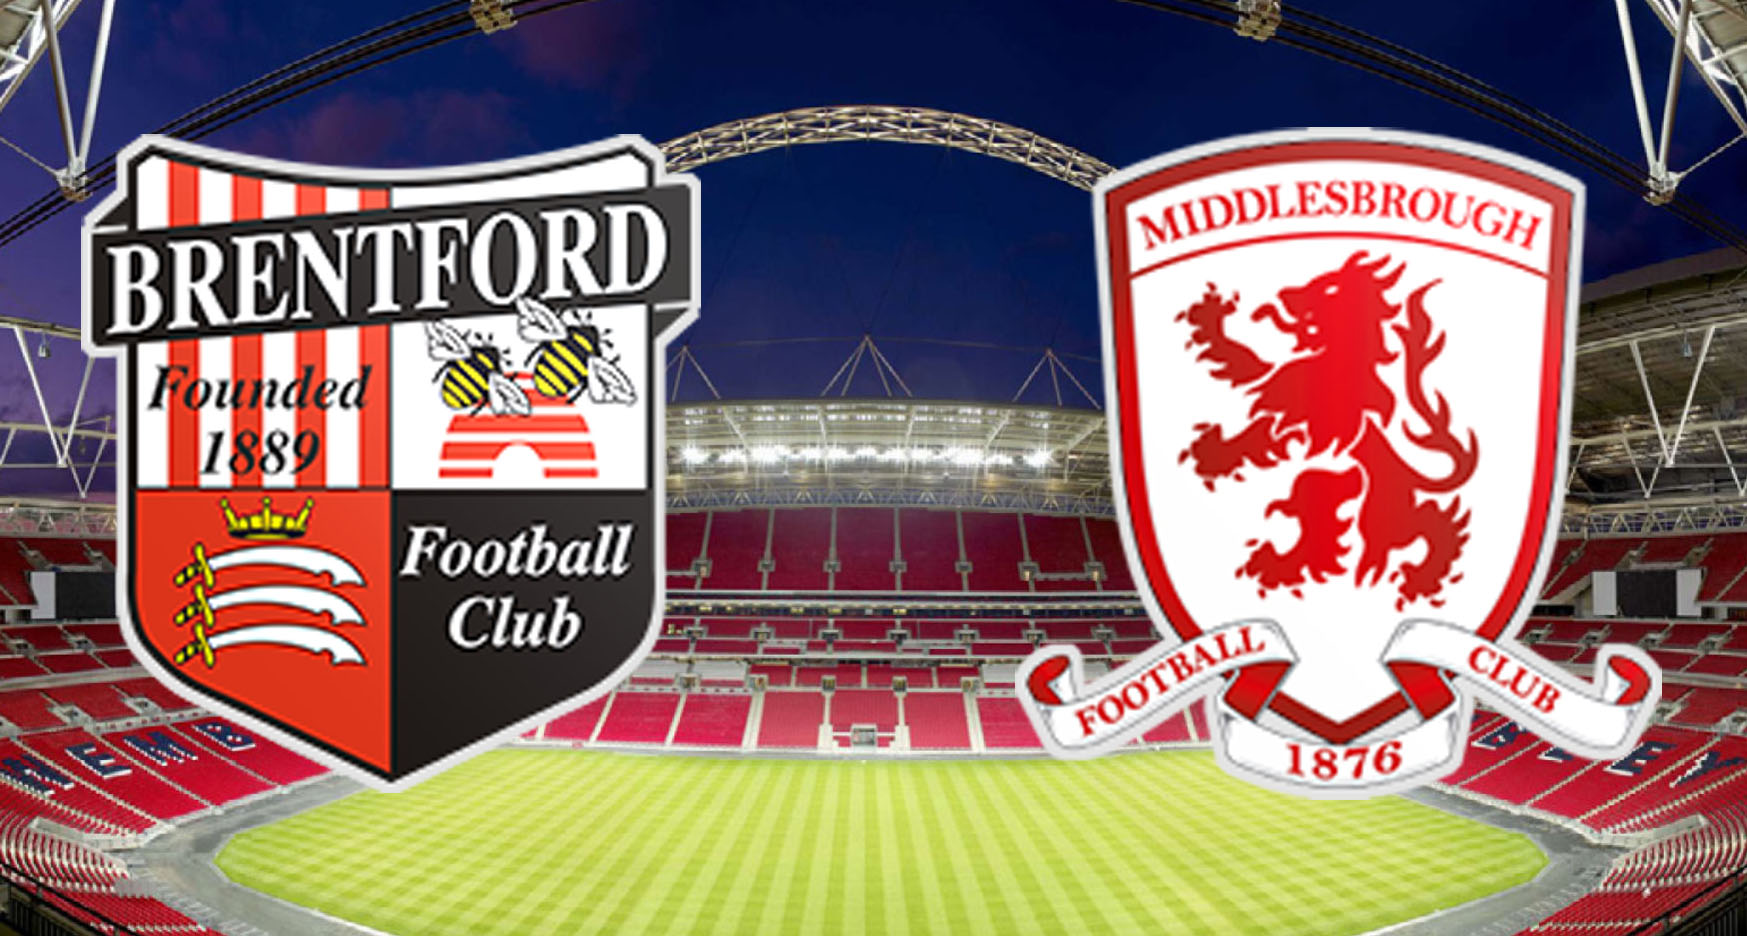 Brentford-vs-Middlesbrough